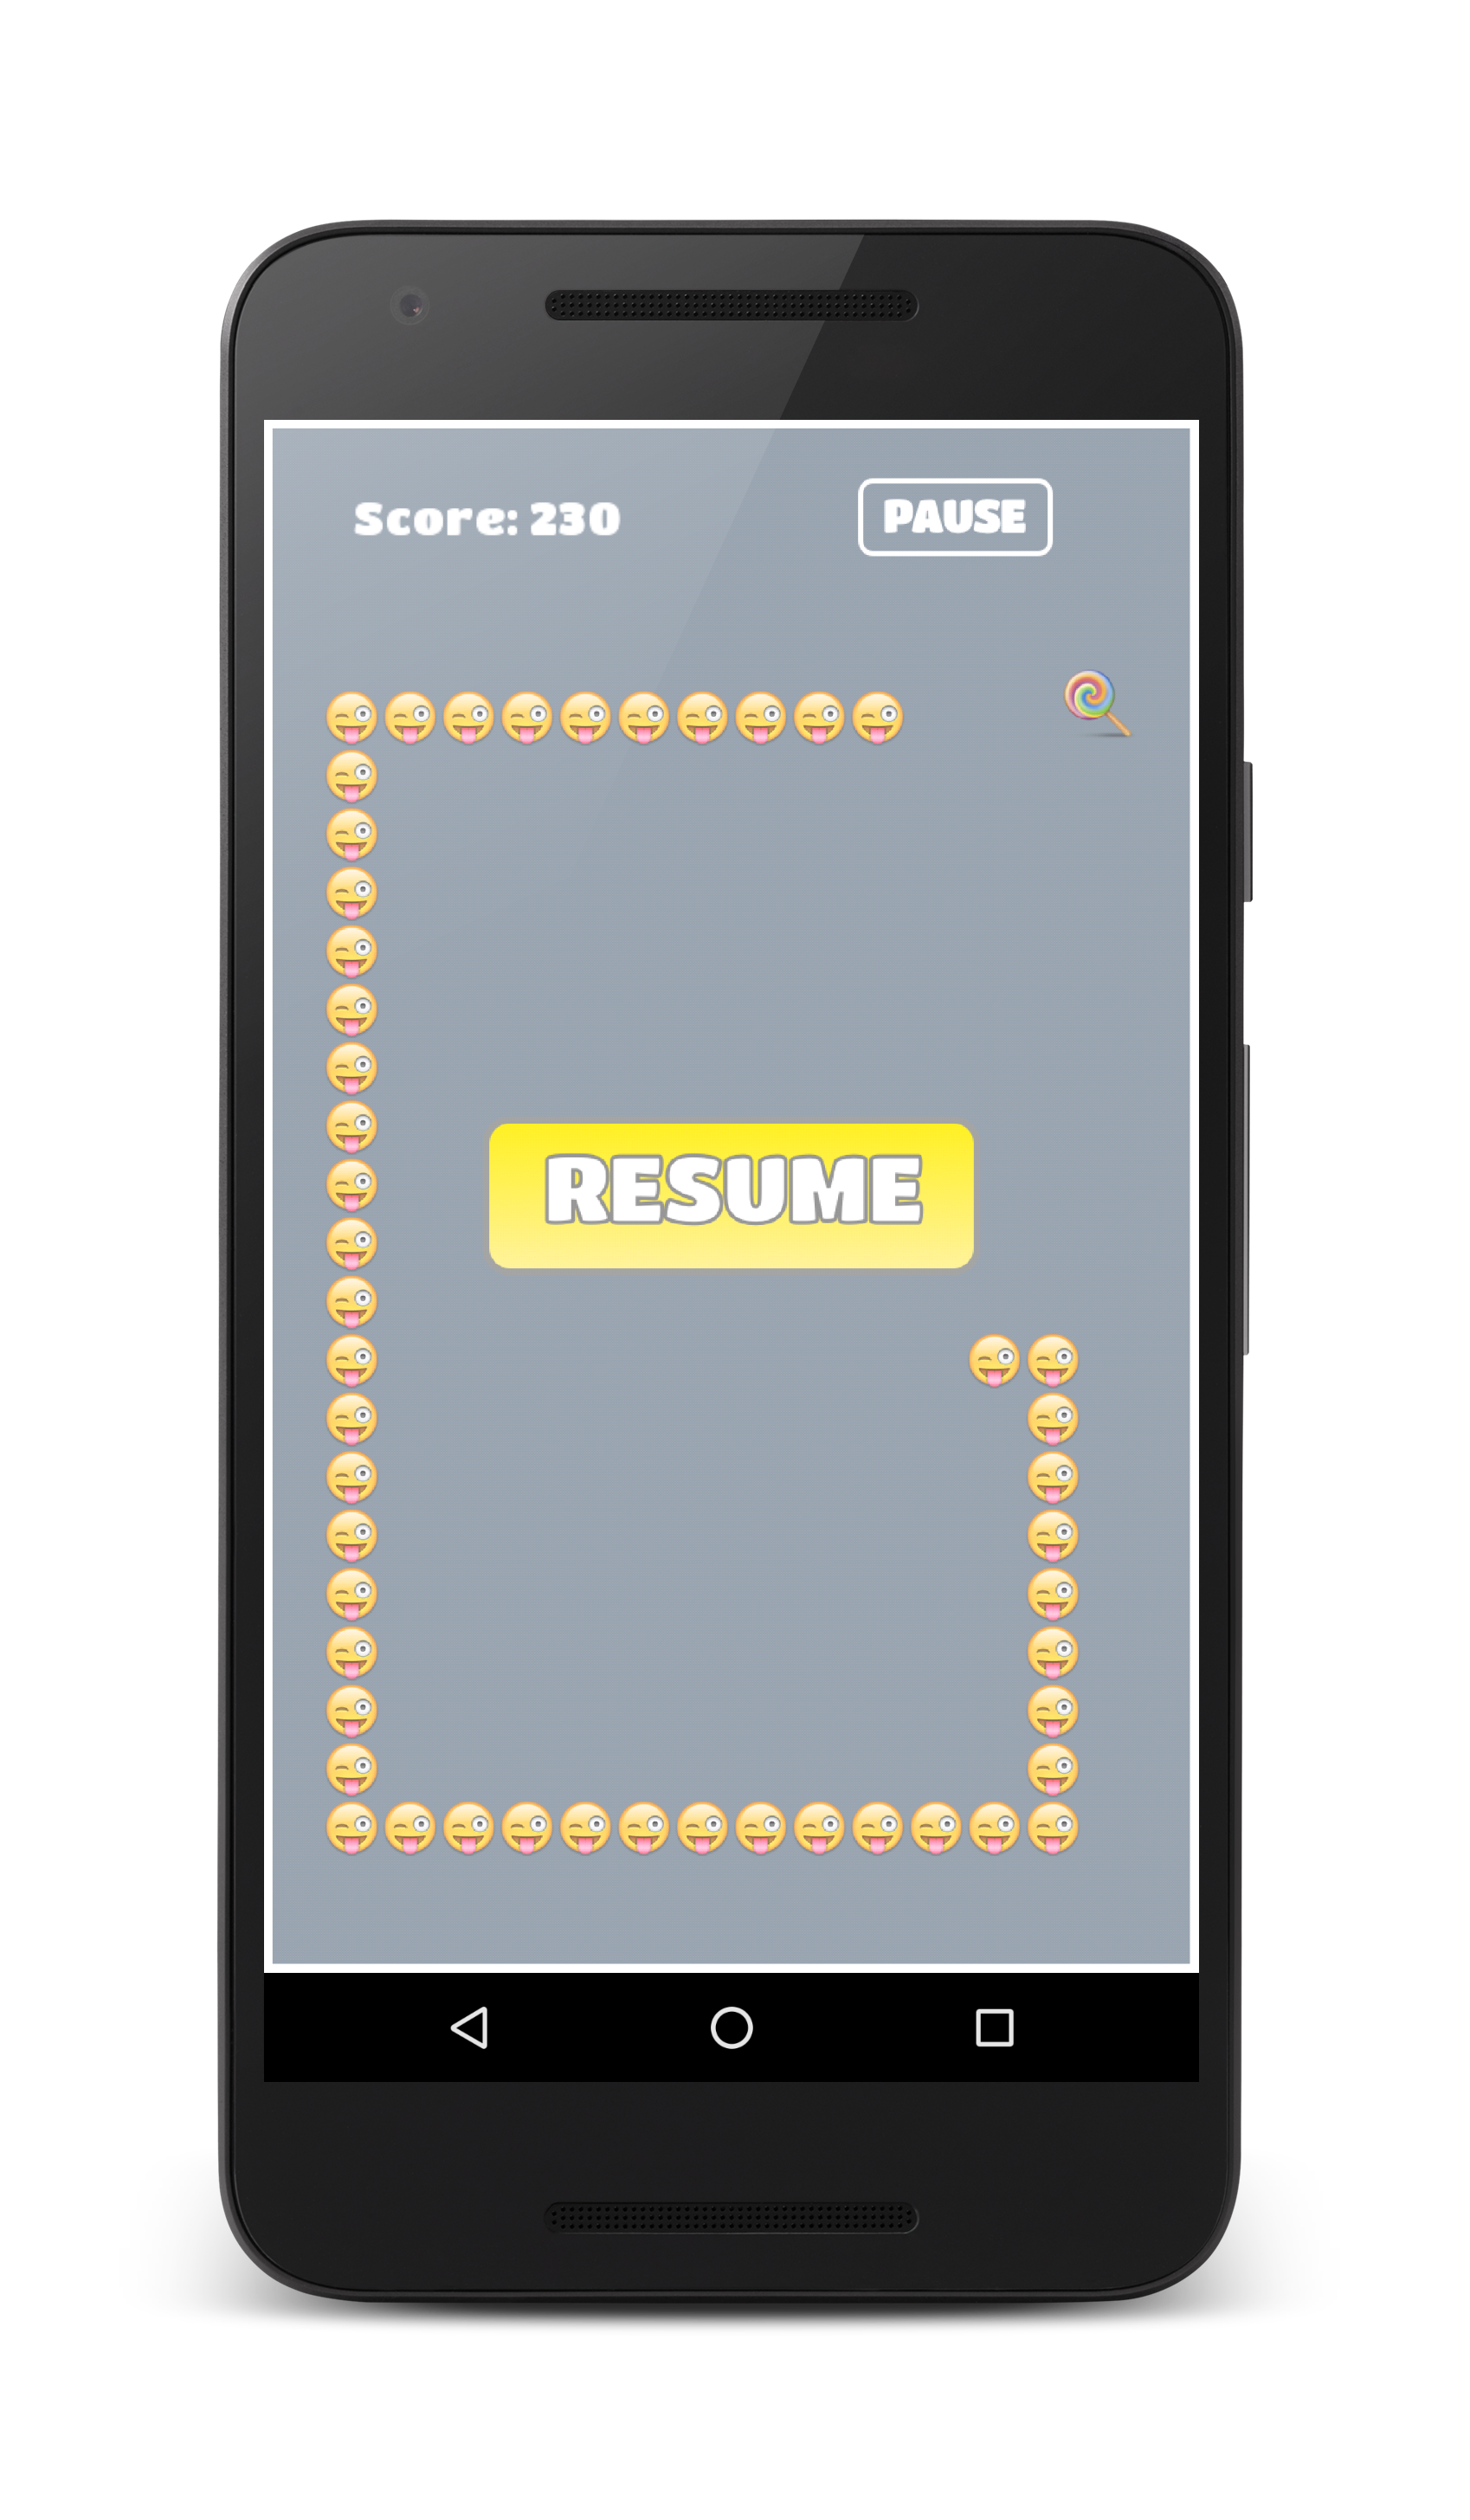 pauseScreen.png